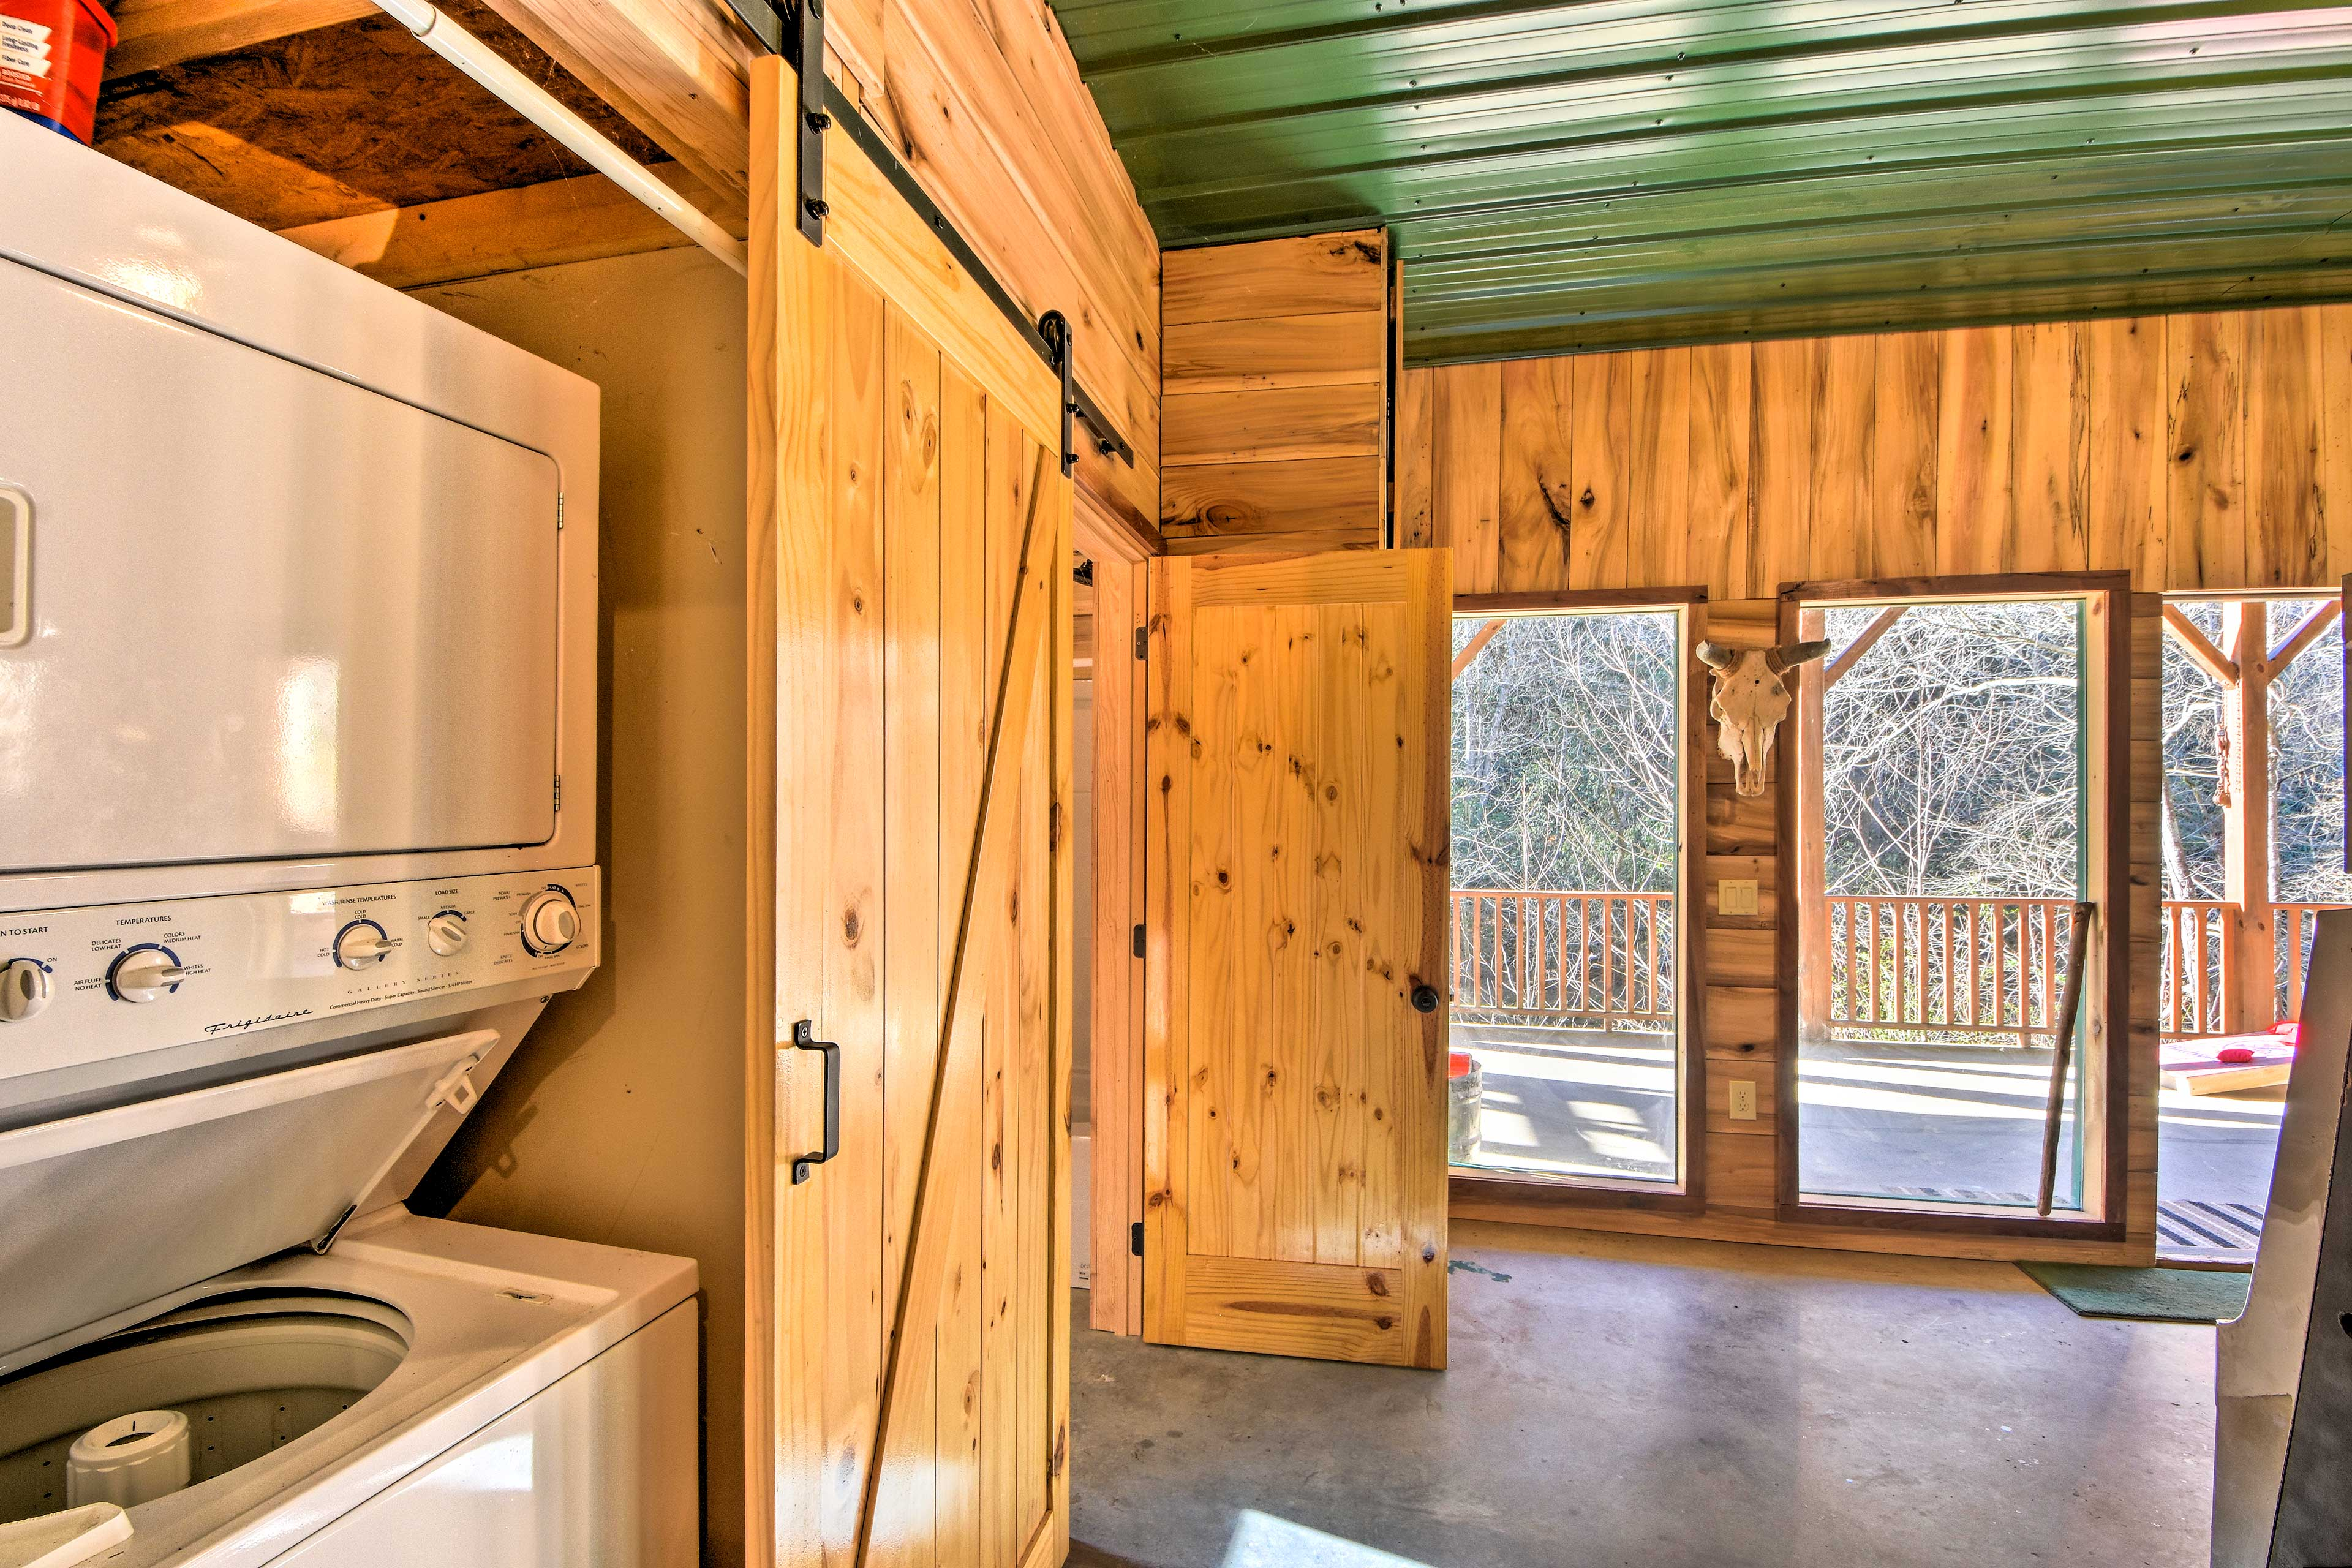 Keep your hiking gear fresh with the cabin's washer and dryer.